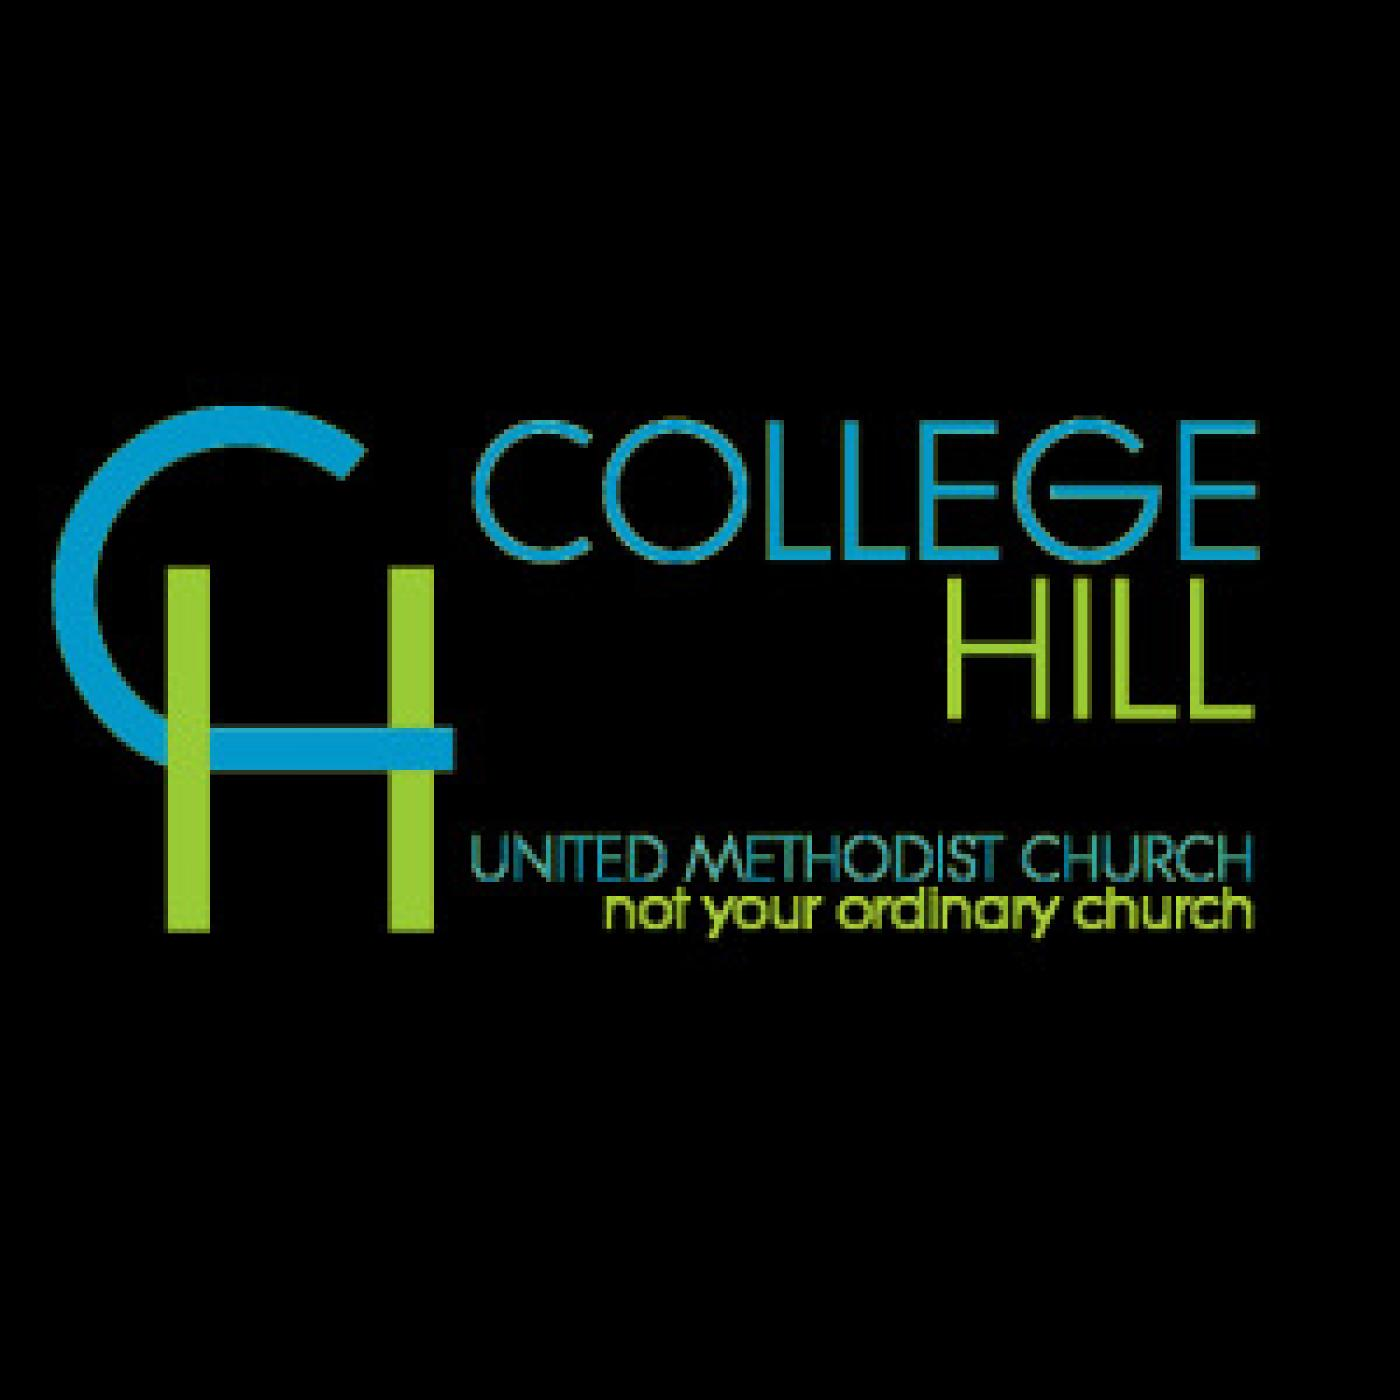 College Hill United Methodist Church